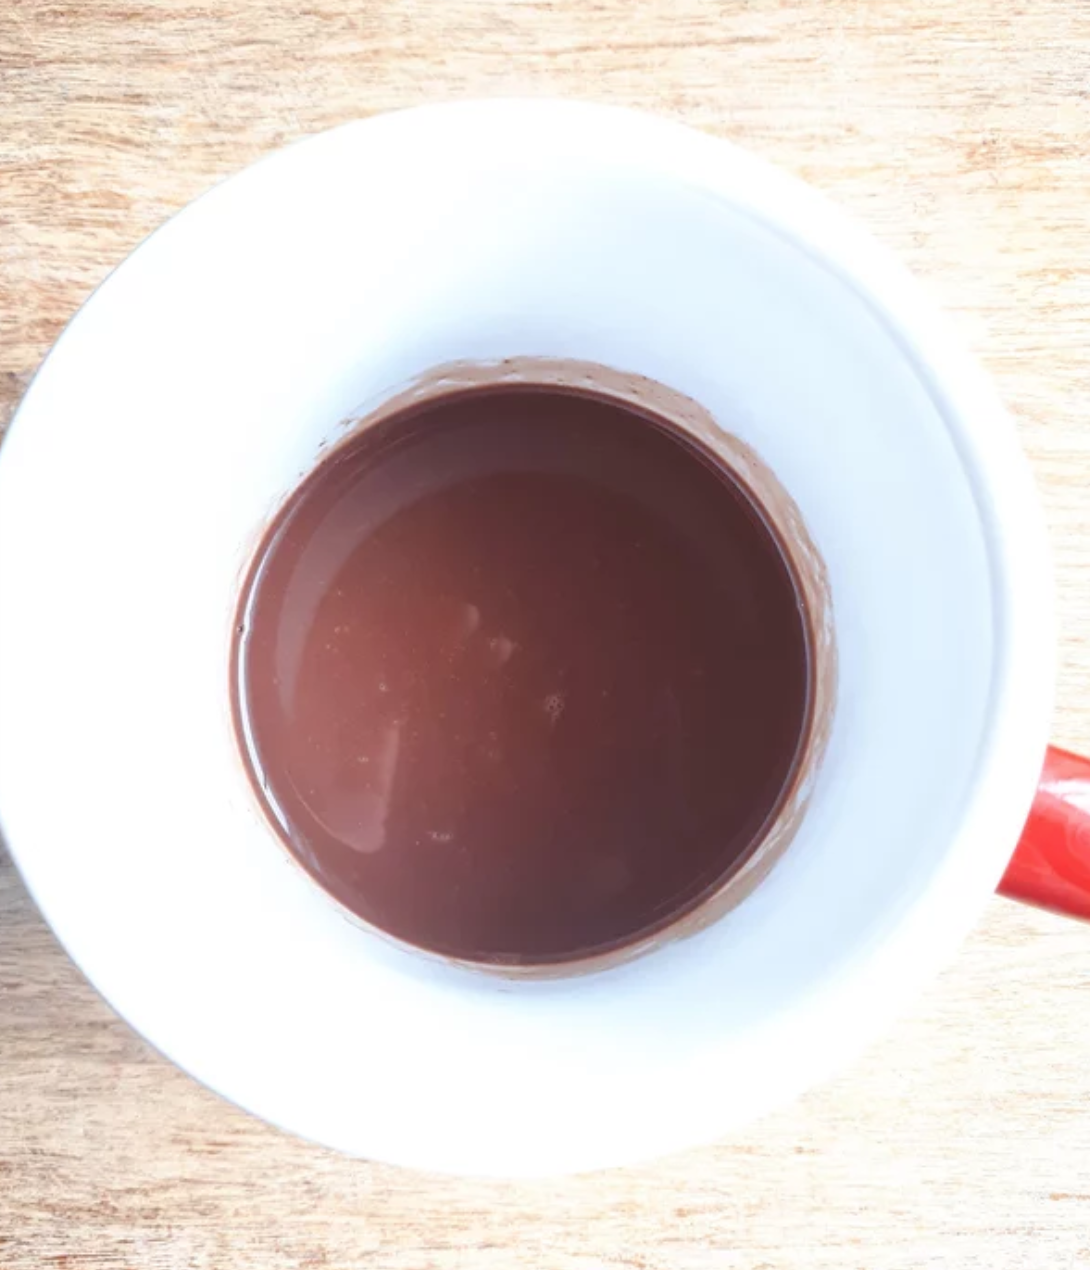 Maple syrup gives this hot chocolate and unexpected seasonal flavor. This recipe calls for fat-free milk, but you can use any kind of milk you have on hand.